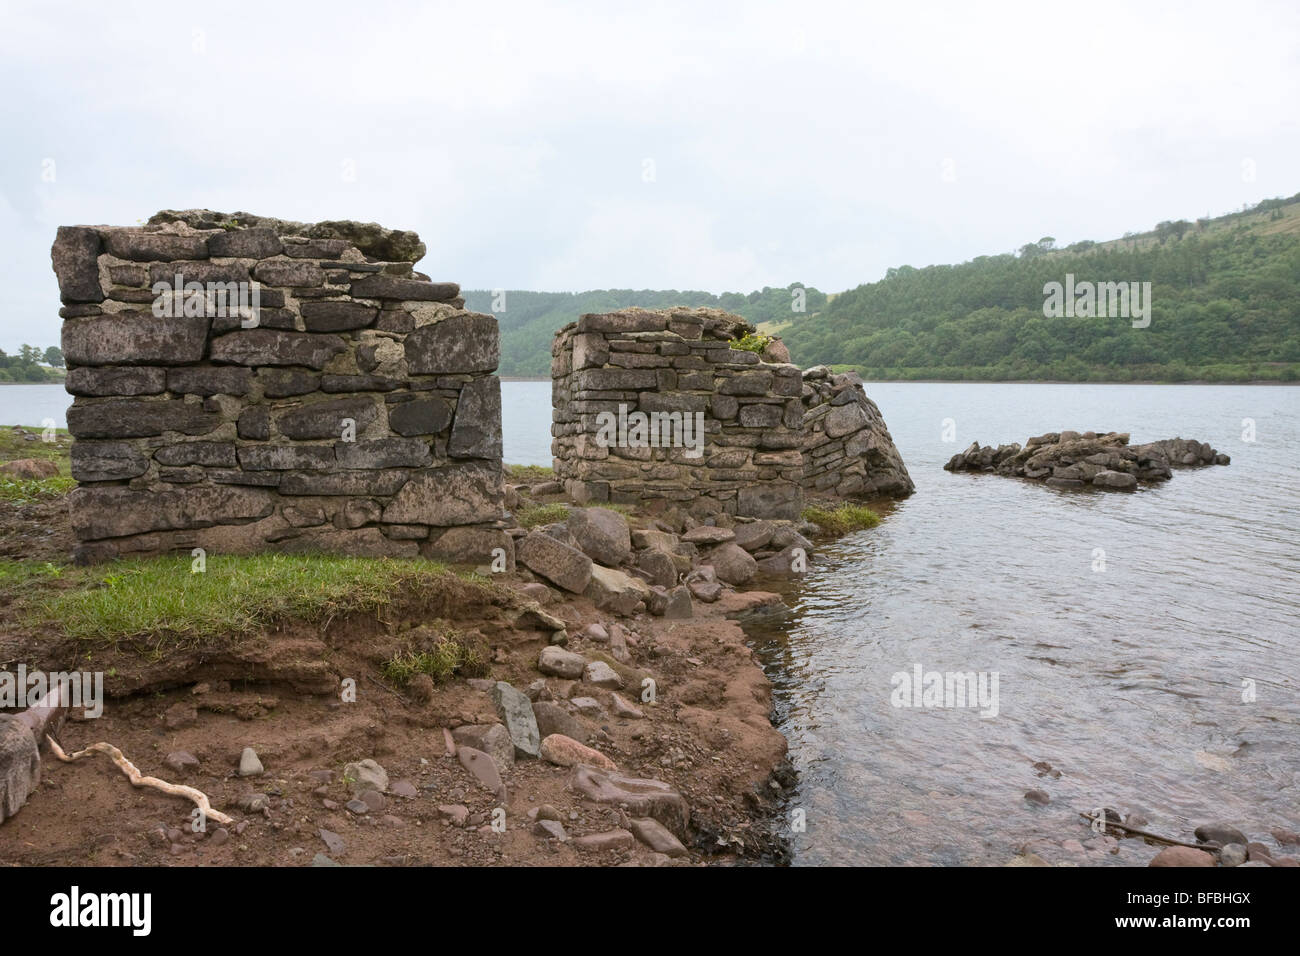 View of Talybont Reservoir, Brecon Beacons National Park - Stock Image